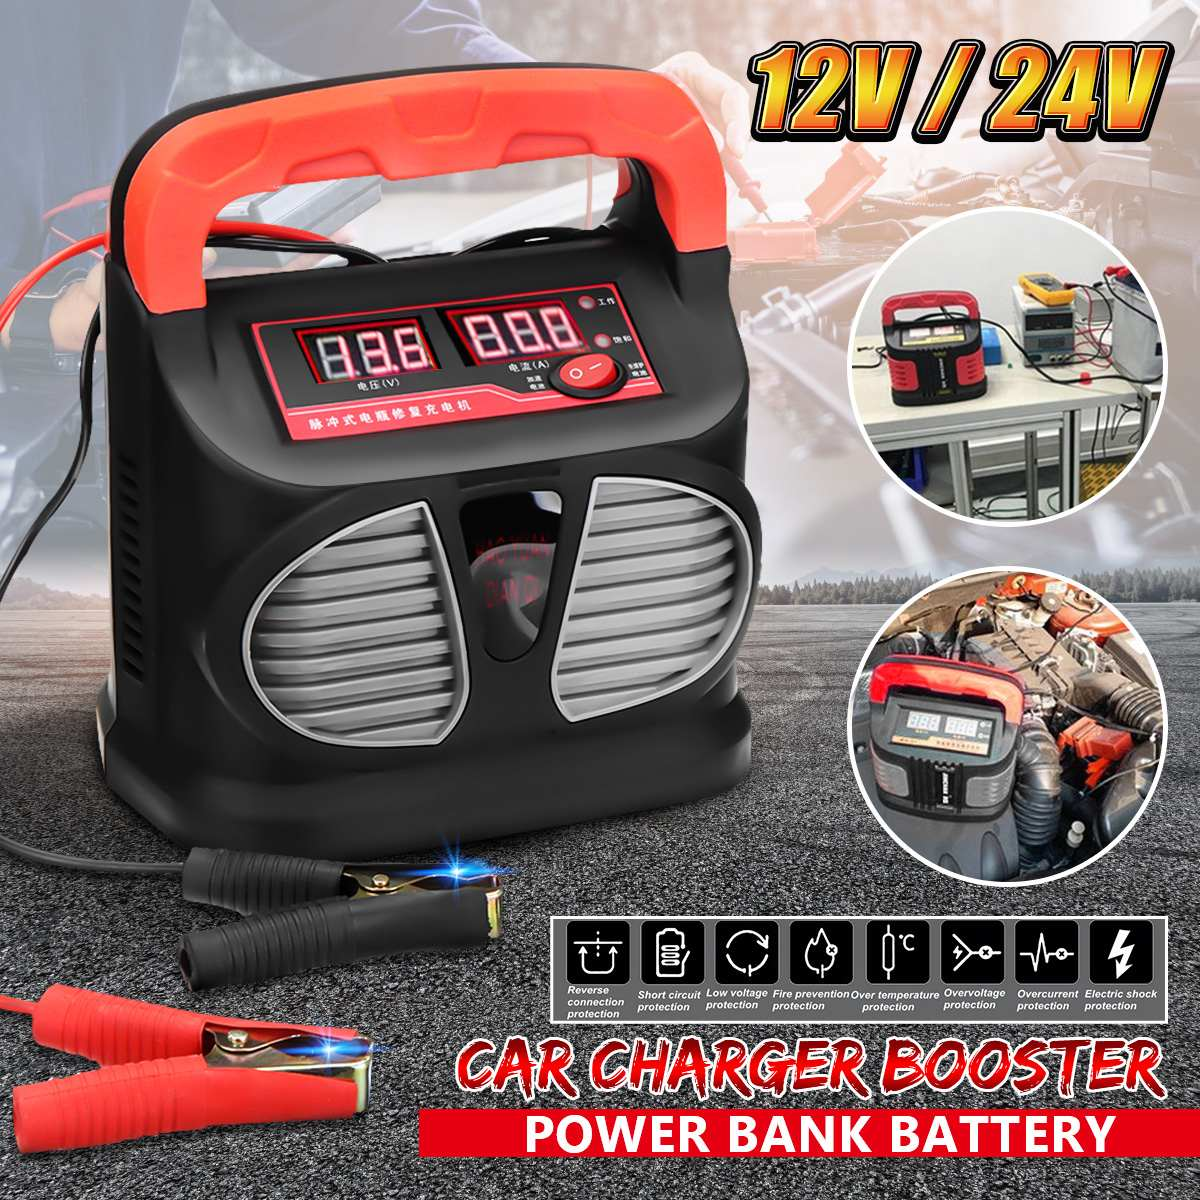 220V <font><b>12V</b></font>/24V <font><b>15A</b></font> Motorcycle Car <font><b>Battery</b></font> <font><b>Charger</b></font> Fully Intelligent Repair Lead Acid Storage <font><b>Charger</b></font> Moto Intelligent LCD Display image